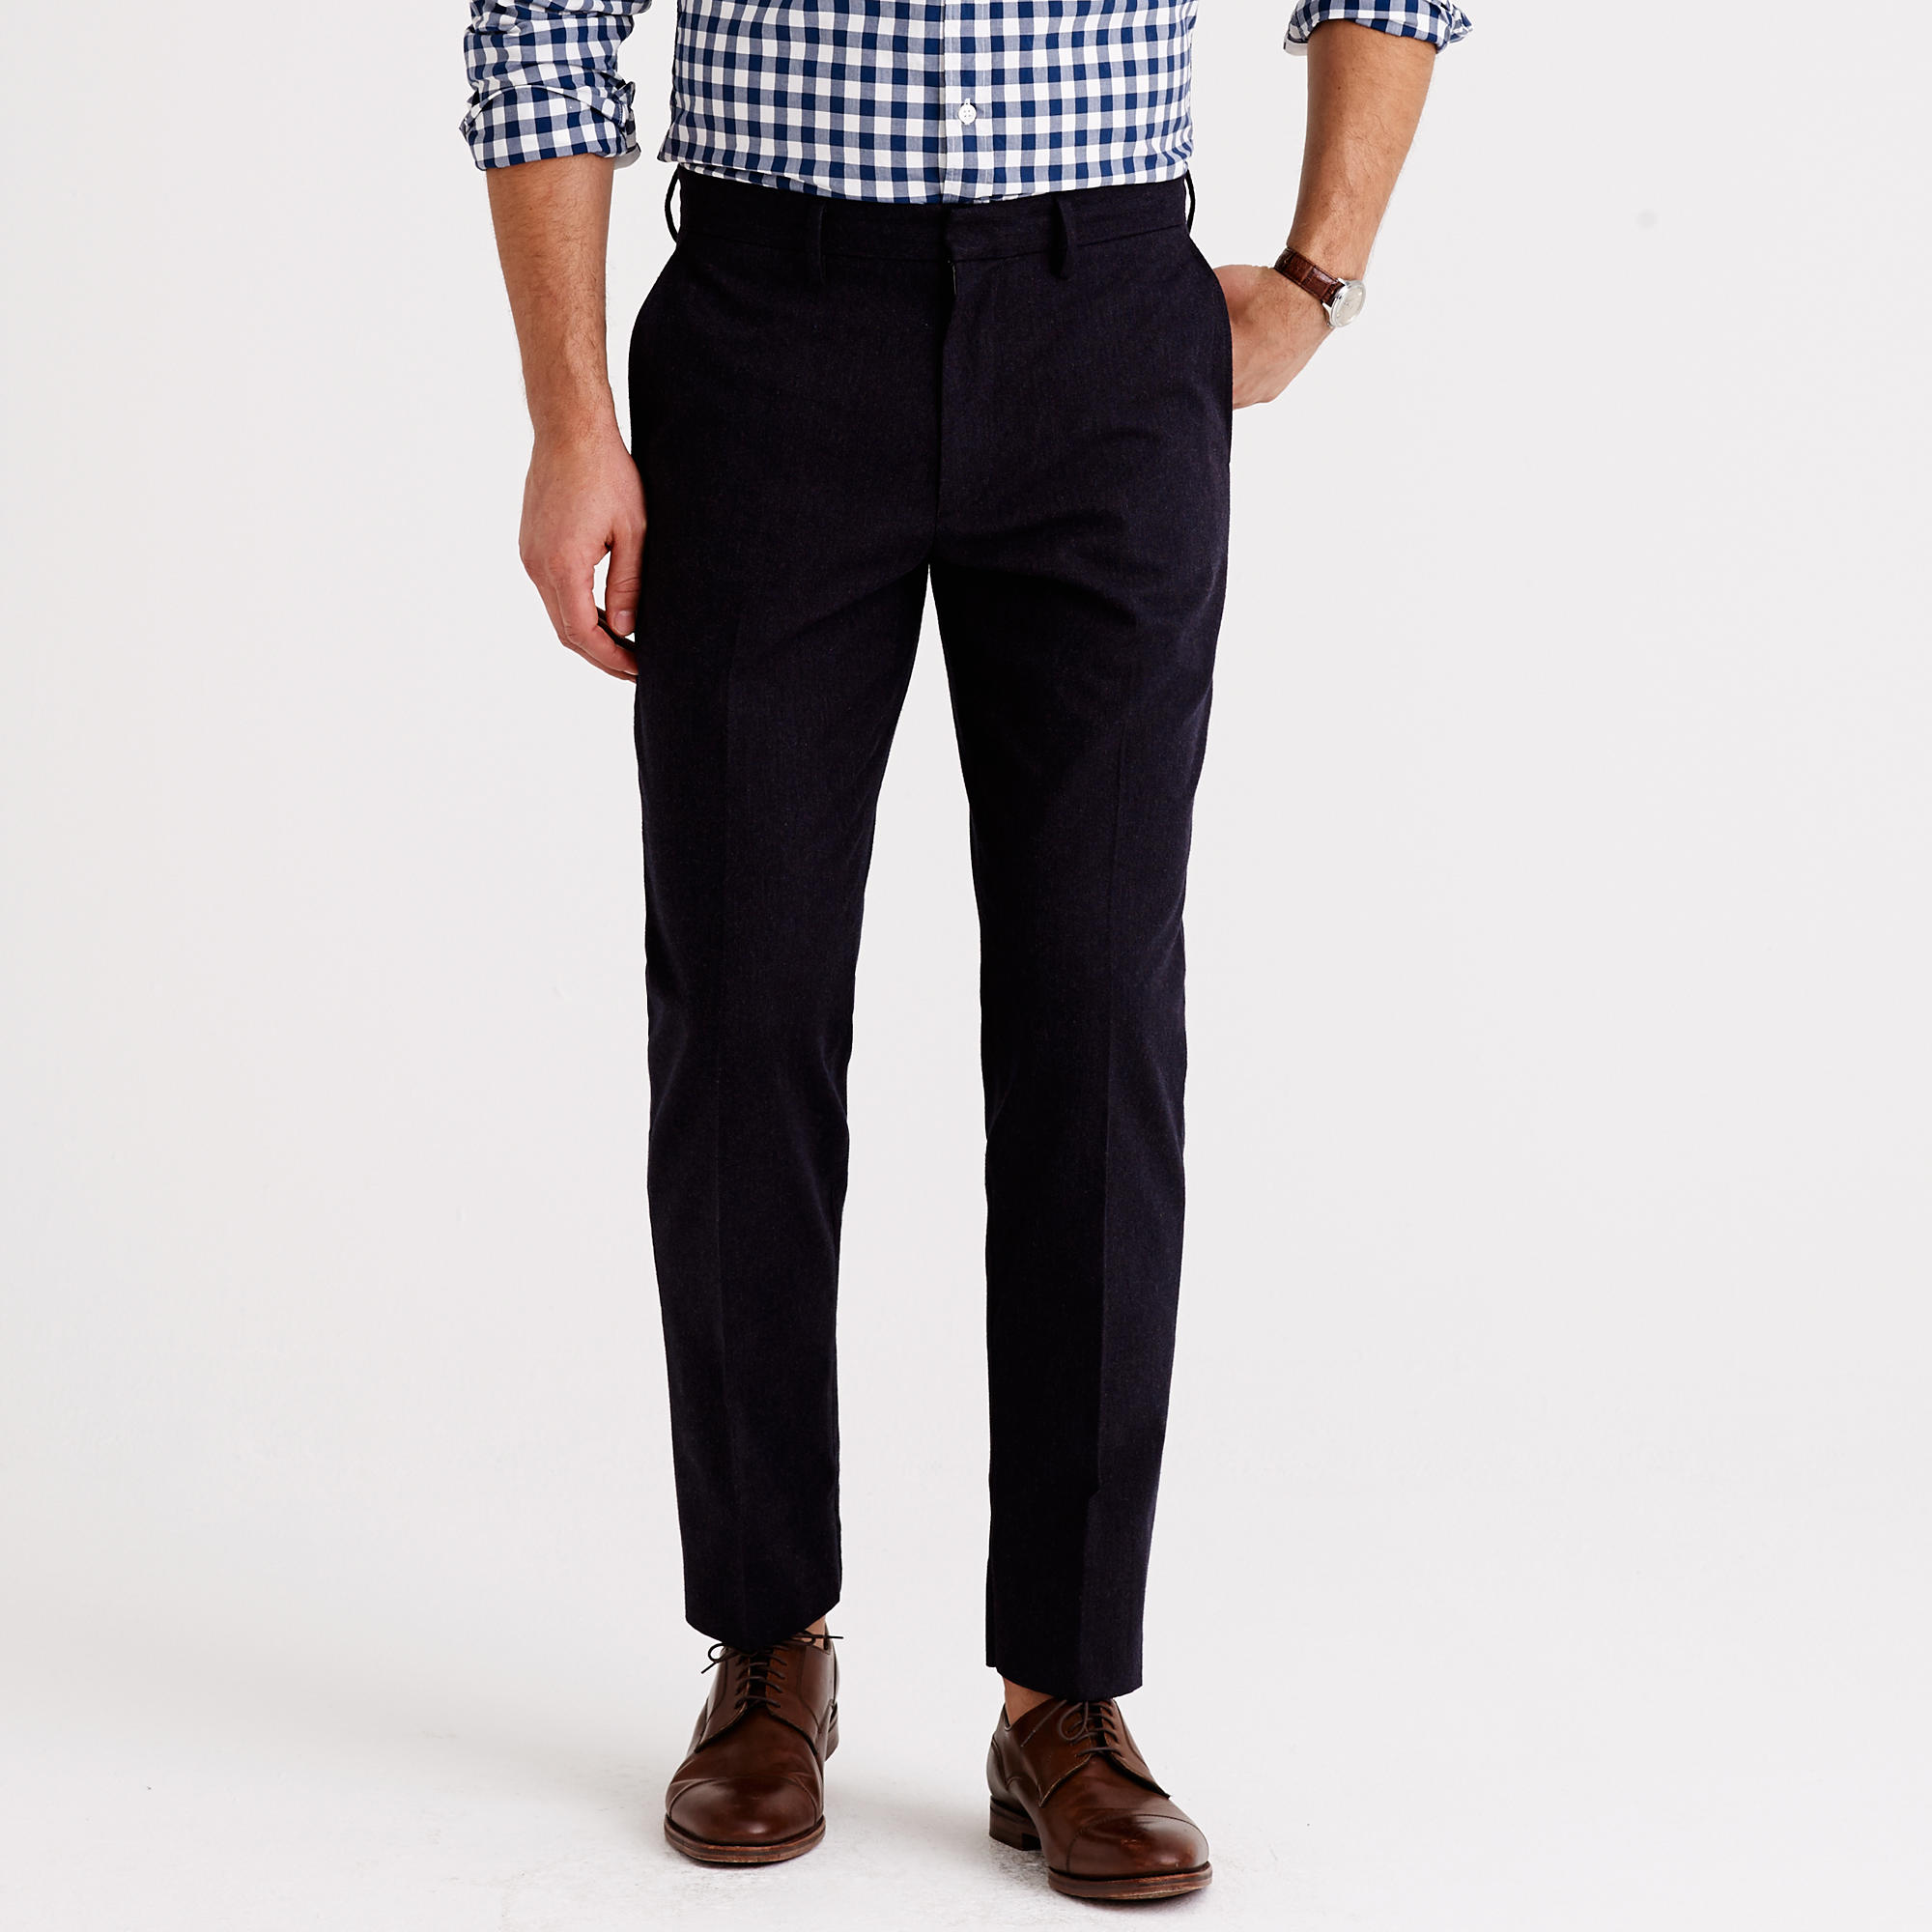 J.Crew Bowery Classic in Brushed Herringbone Cotton | 10 Fall Wardrobe Essentials for Men